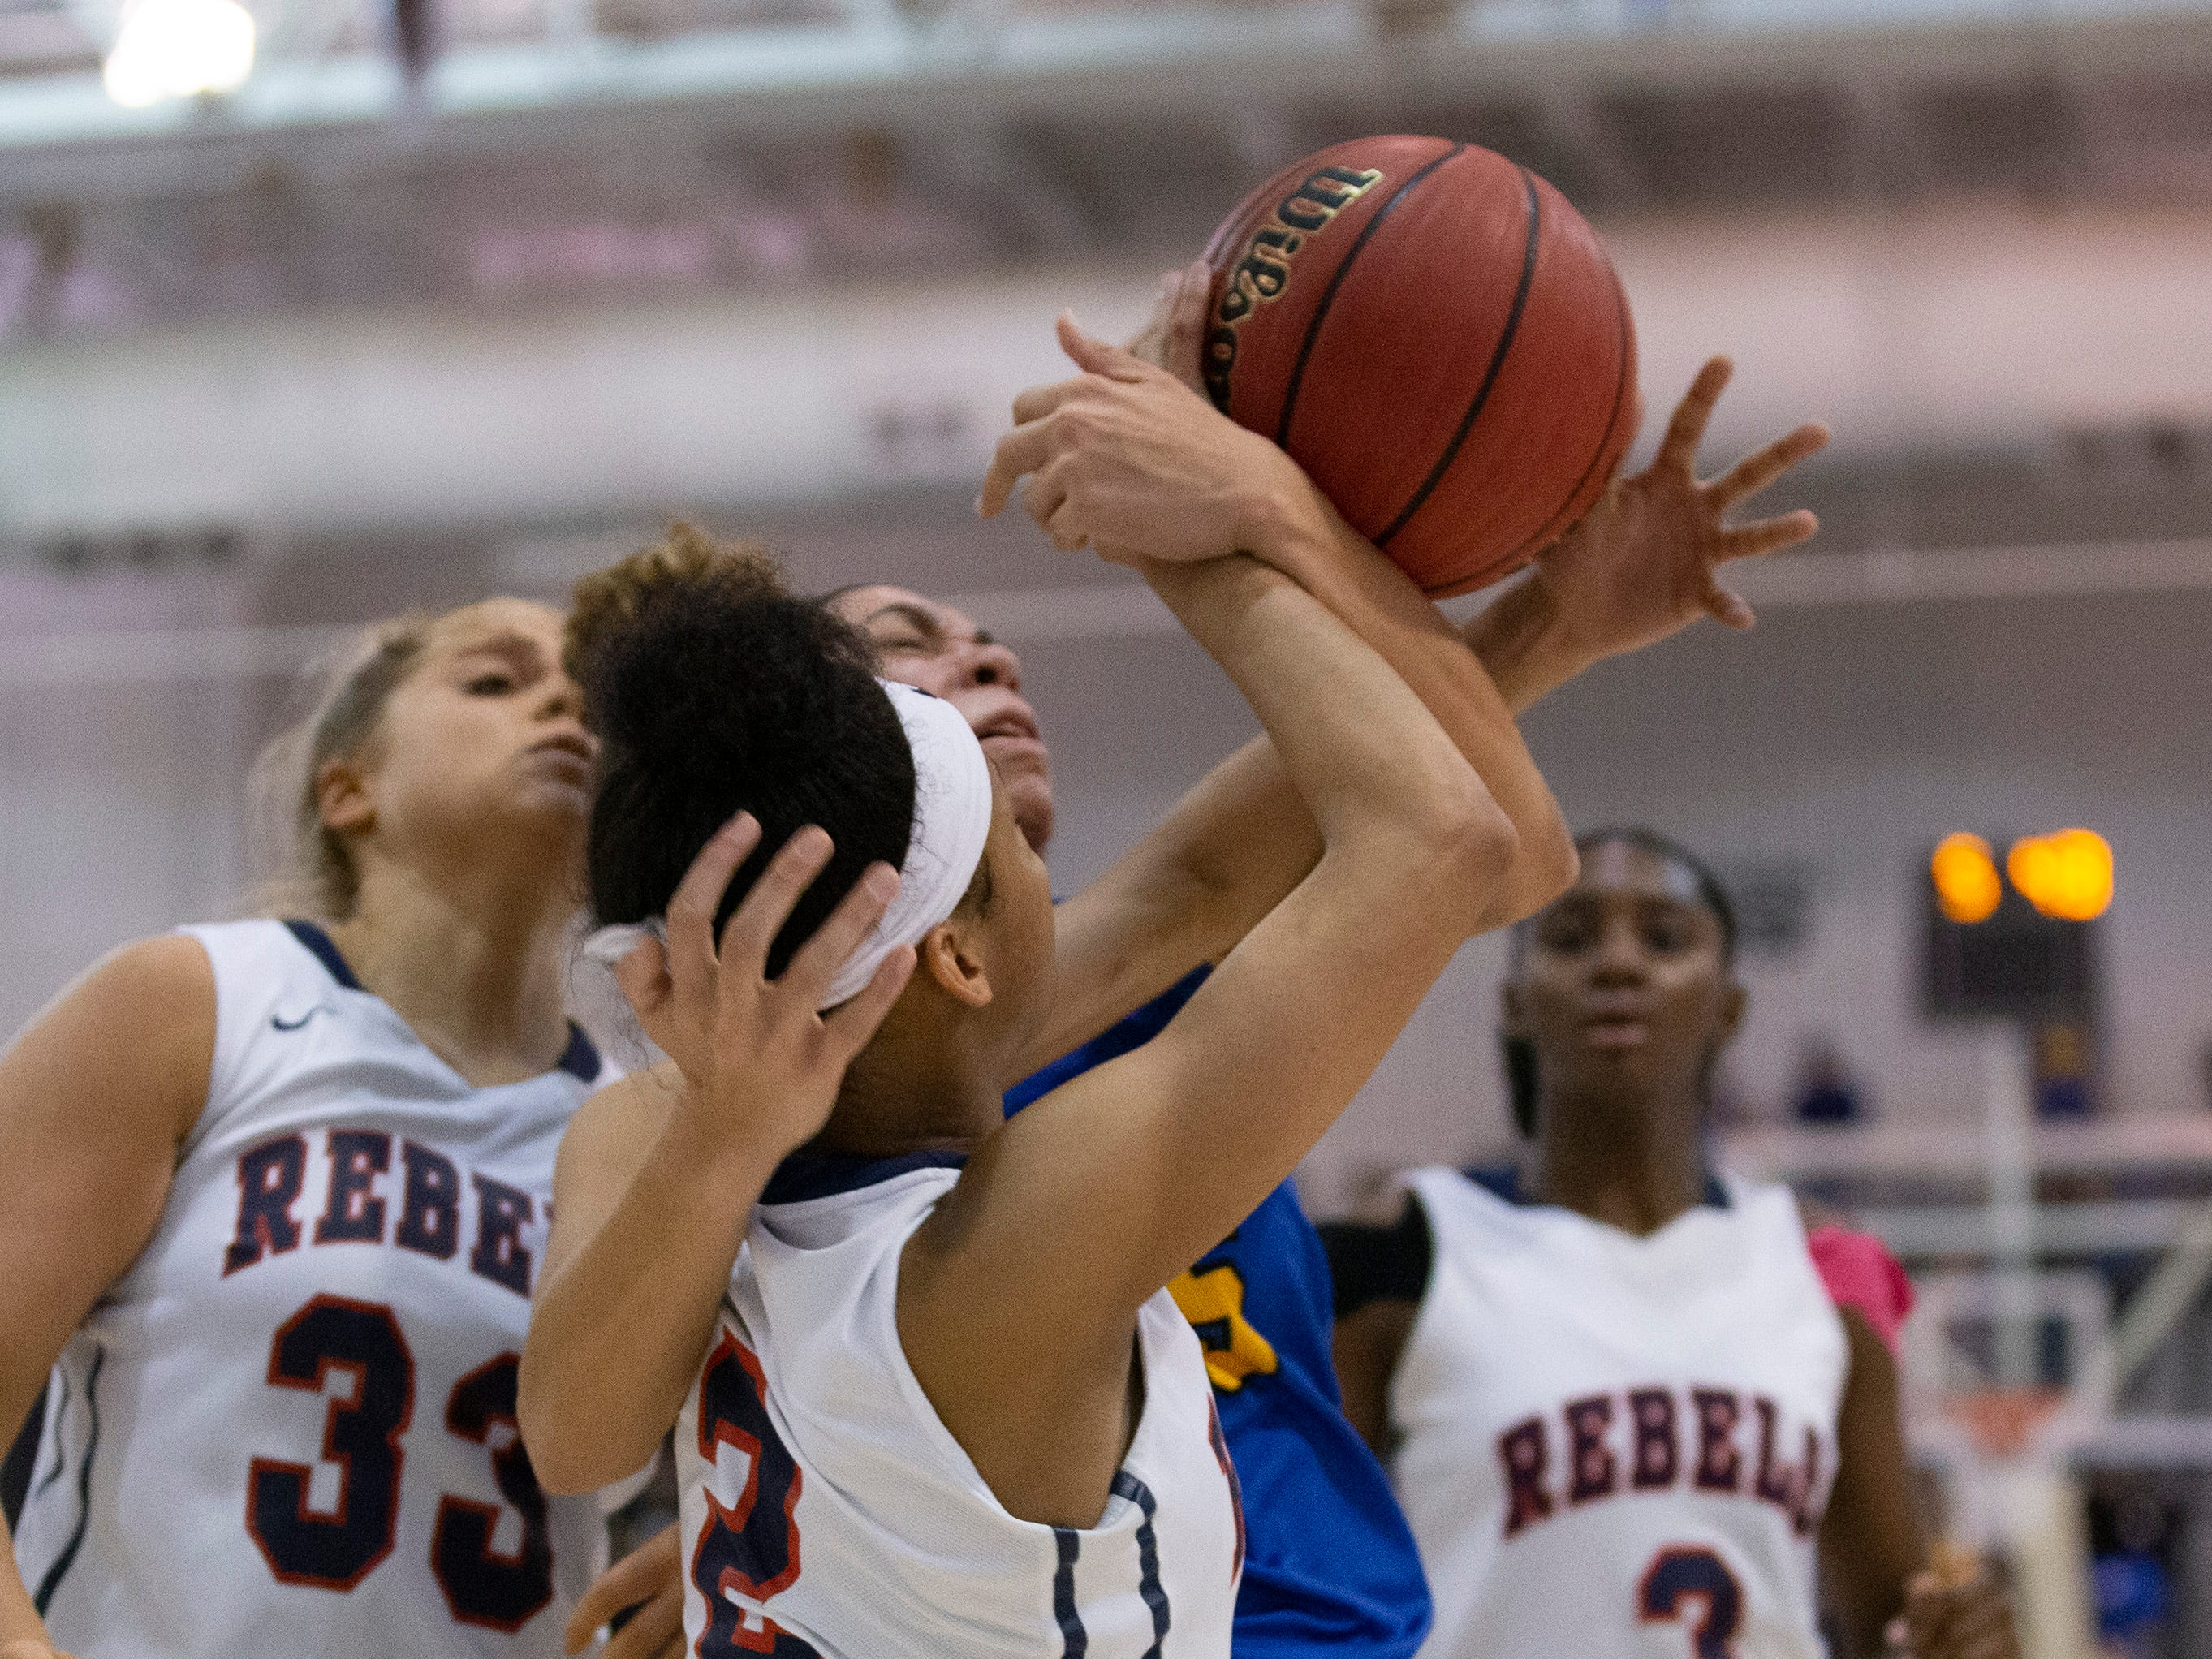 Manchester's Dakota Adams and Saddle River Day's Saniah Caldwell battle for loose ball.  Manchester Girls Basketball vs Saddle River Day in NJSIAA Tournament of Champions Semifinal in Toms River on March 14, 2019.